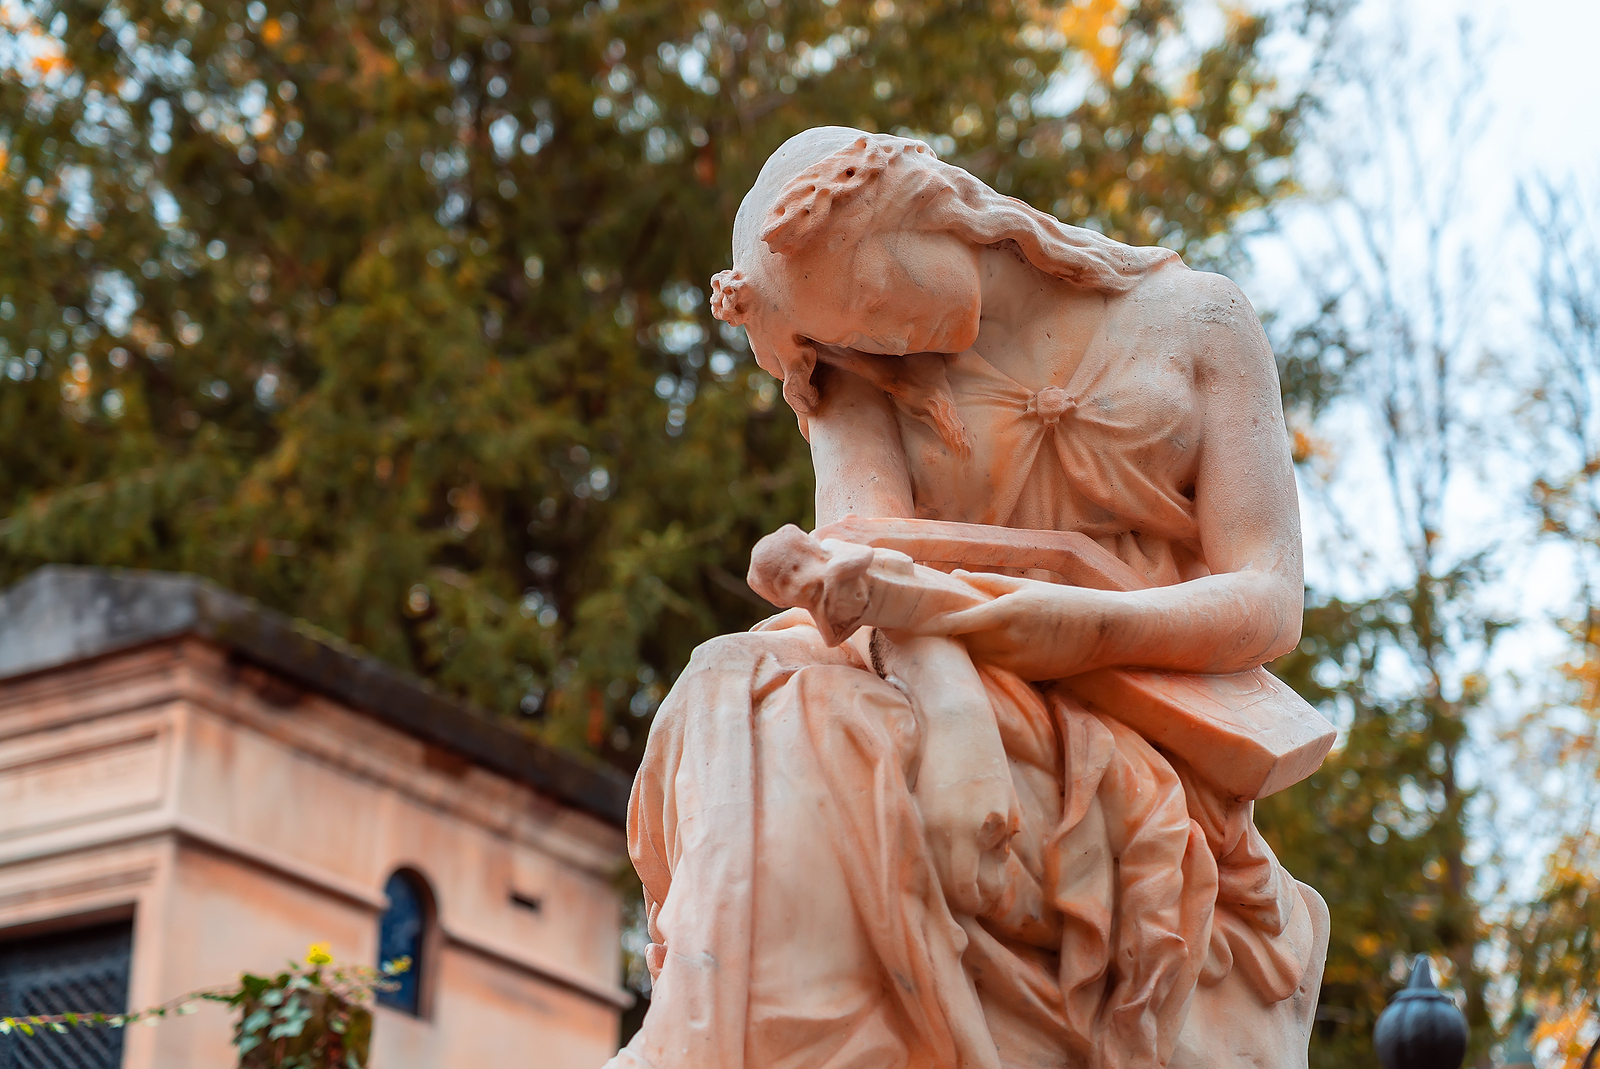 Funerary Art: Historical Context and Most Famous Examples